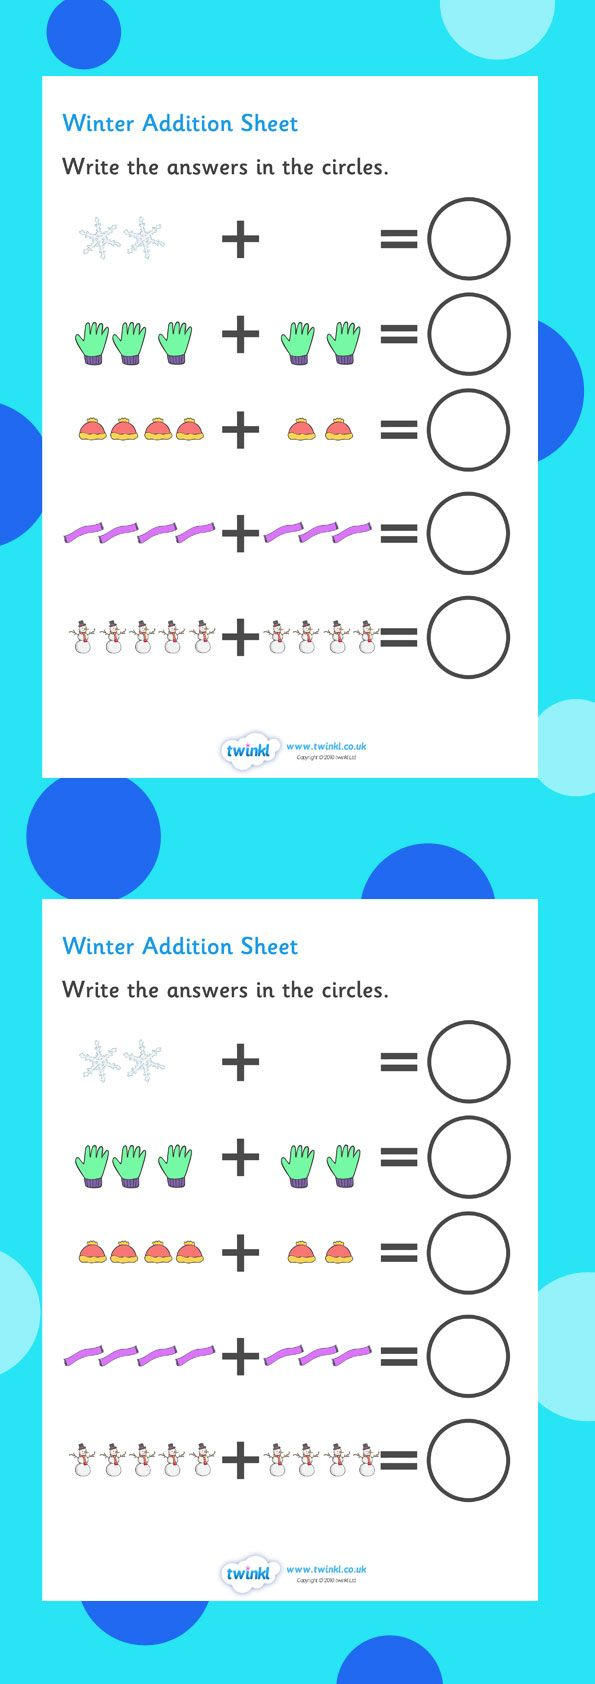 My Counting Worksheet (Winter). Free Printables. | Education ...